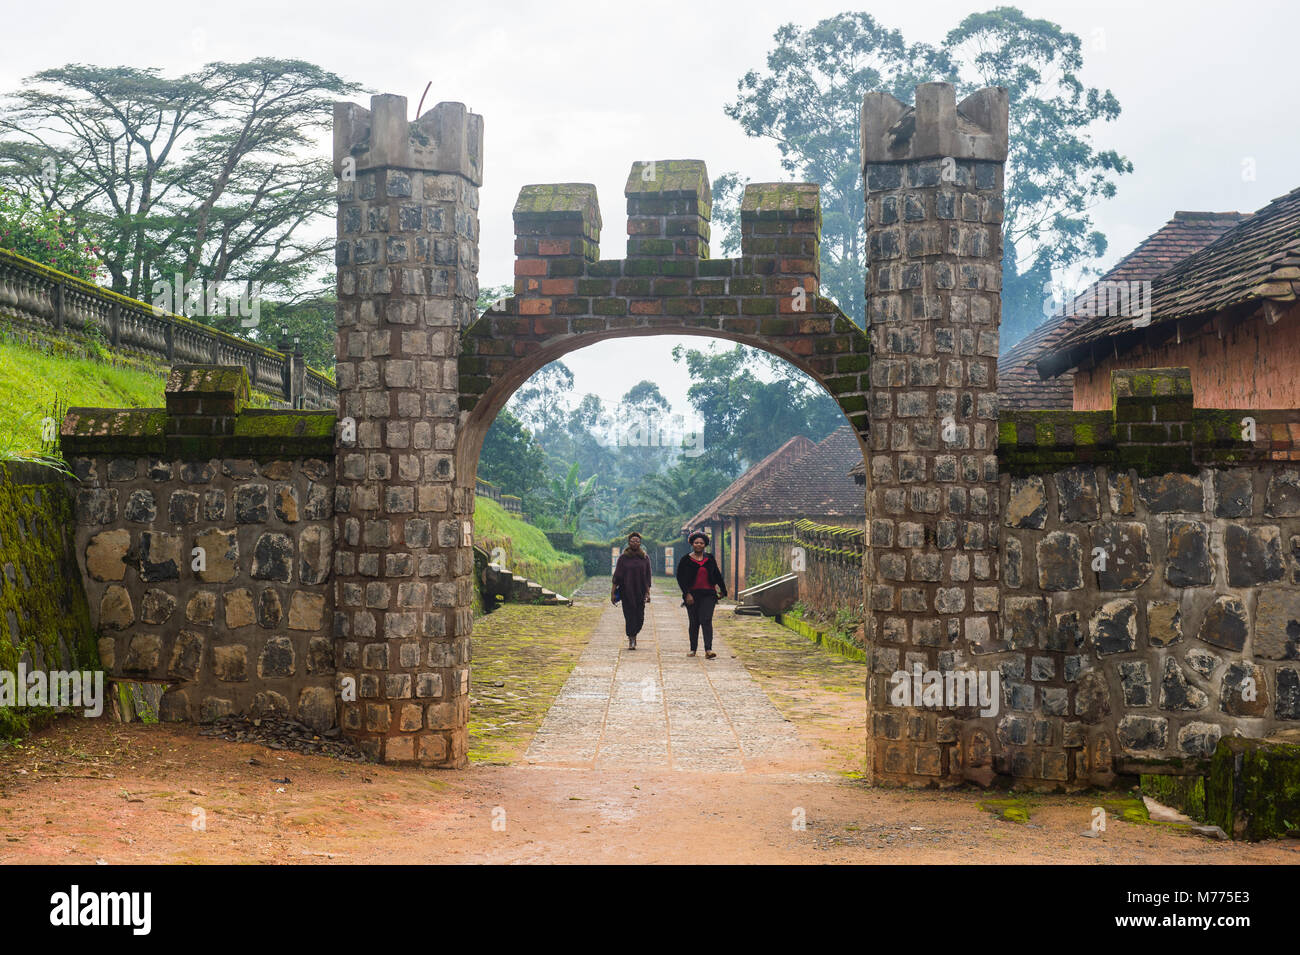 Entrance to Fon's palace, Bafut, Cameroon, Africa - Stock Image